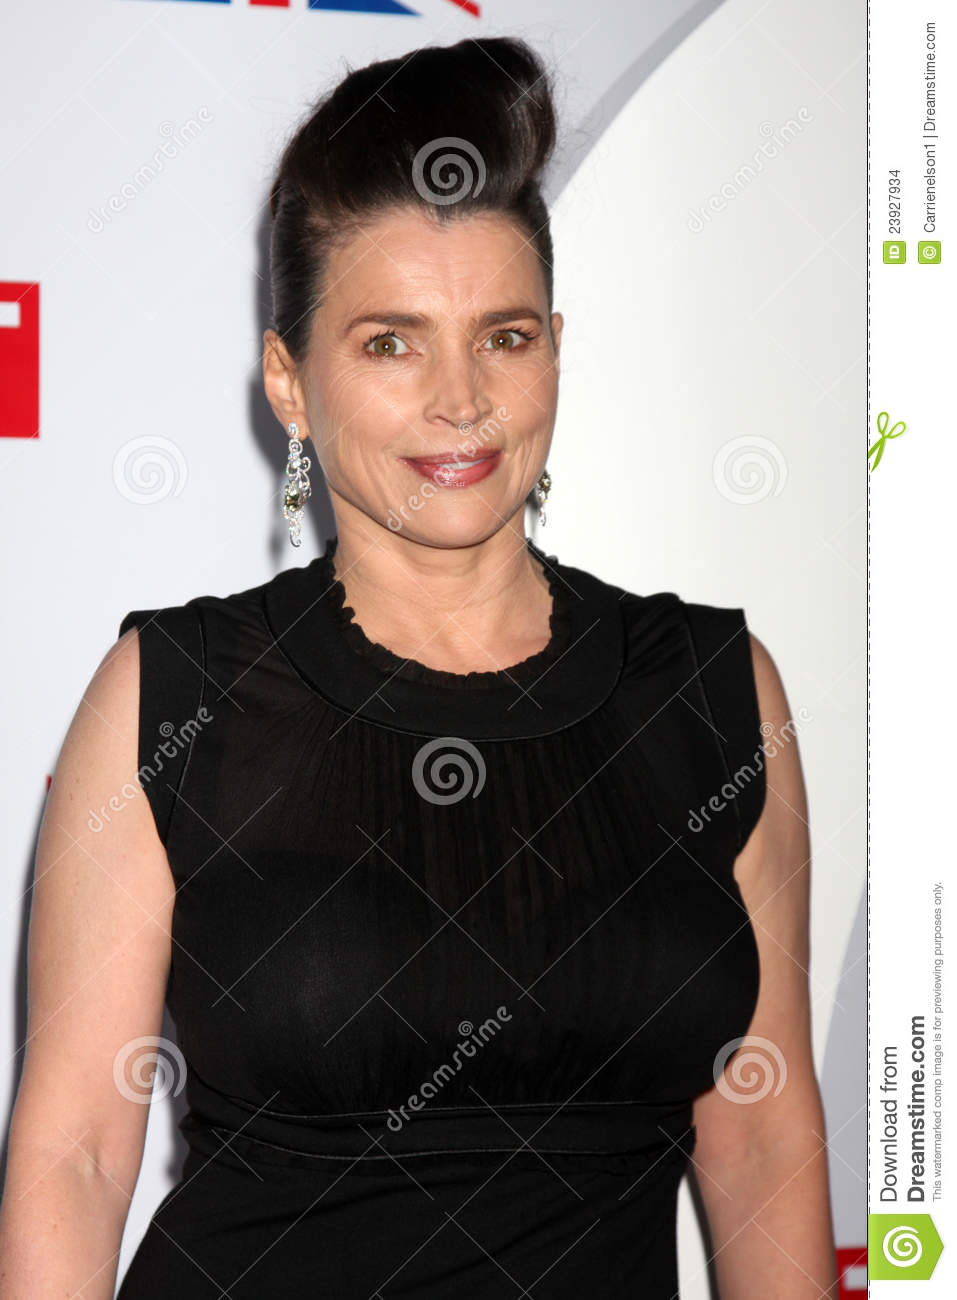 Julia Ormond Immagini julia ormond immagine stock editoriale. immagine di